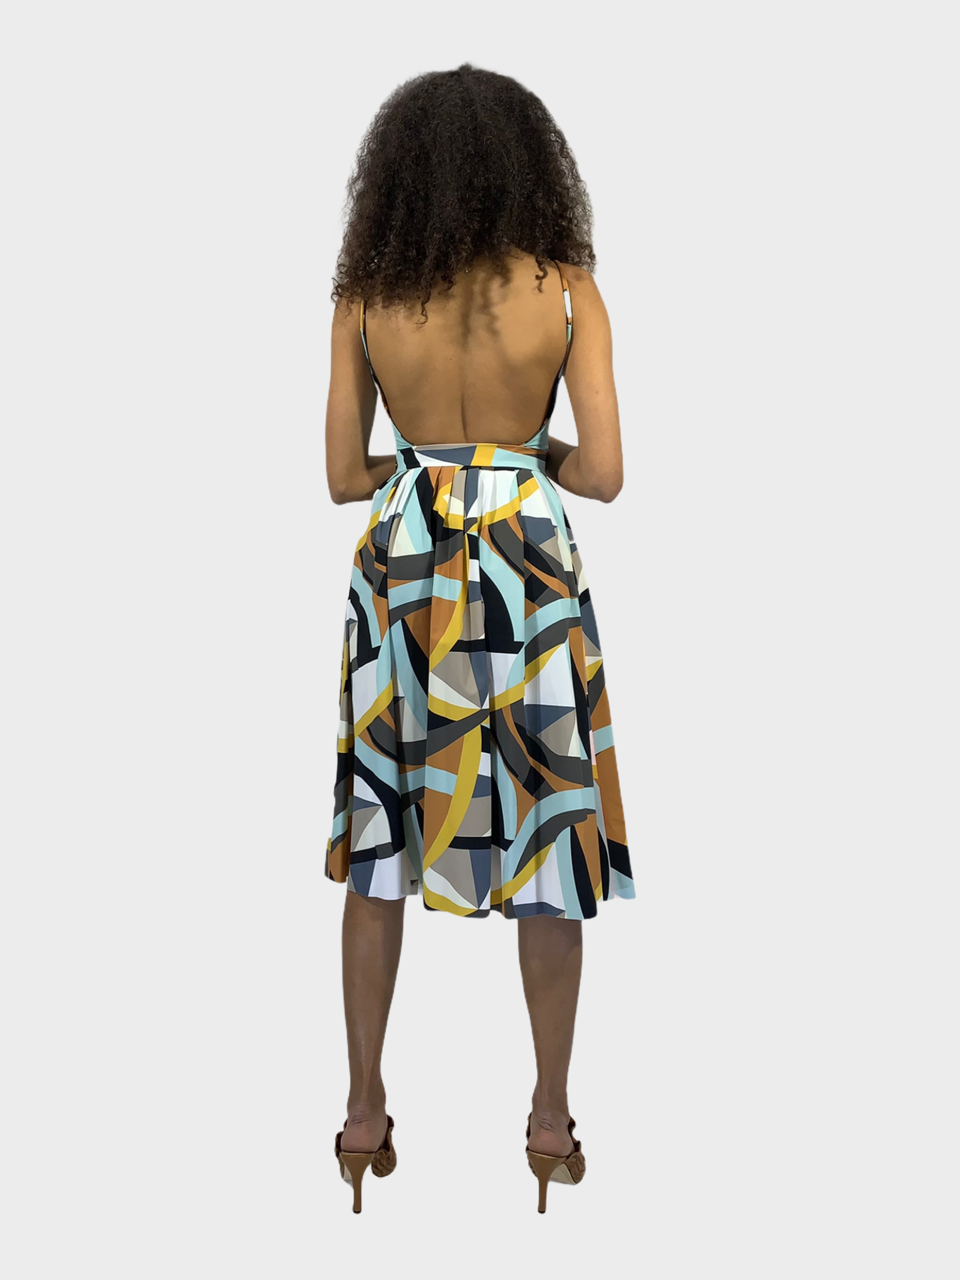 SHOPPING ON LINE RRD ROBERTO RICCI DESIGNS LONG SKIRT RAINBOW LADY NEW  COLLECTION  WOMEN'S  SPRING  SUMMER 2021